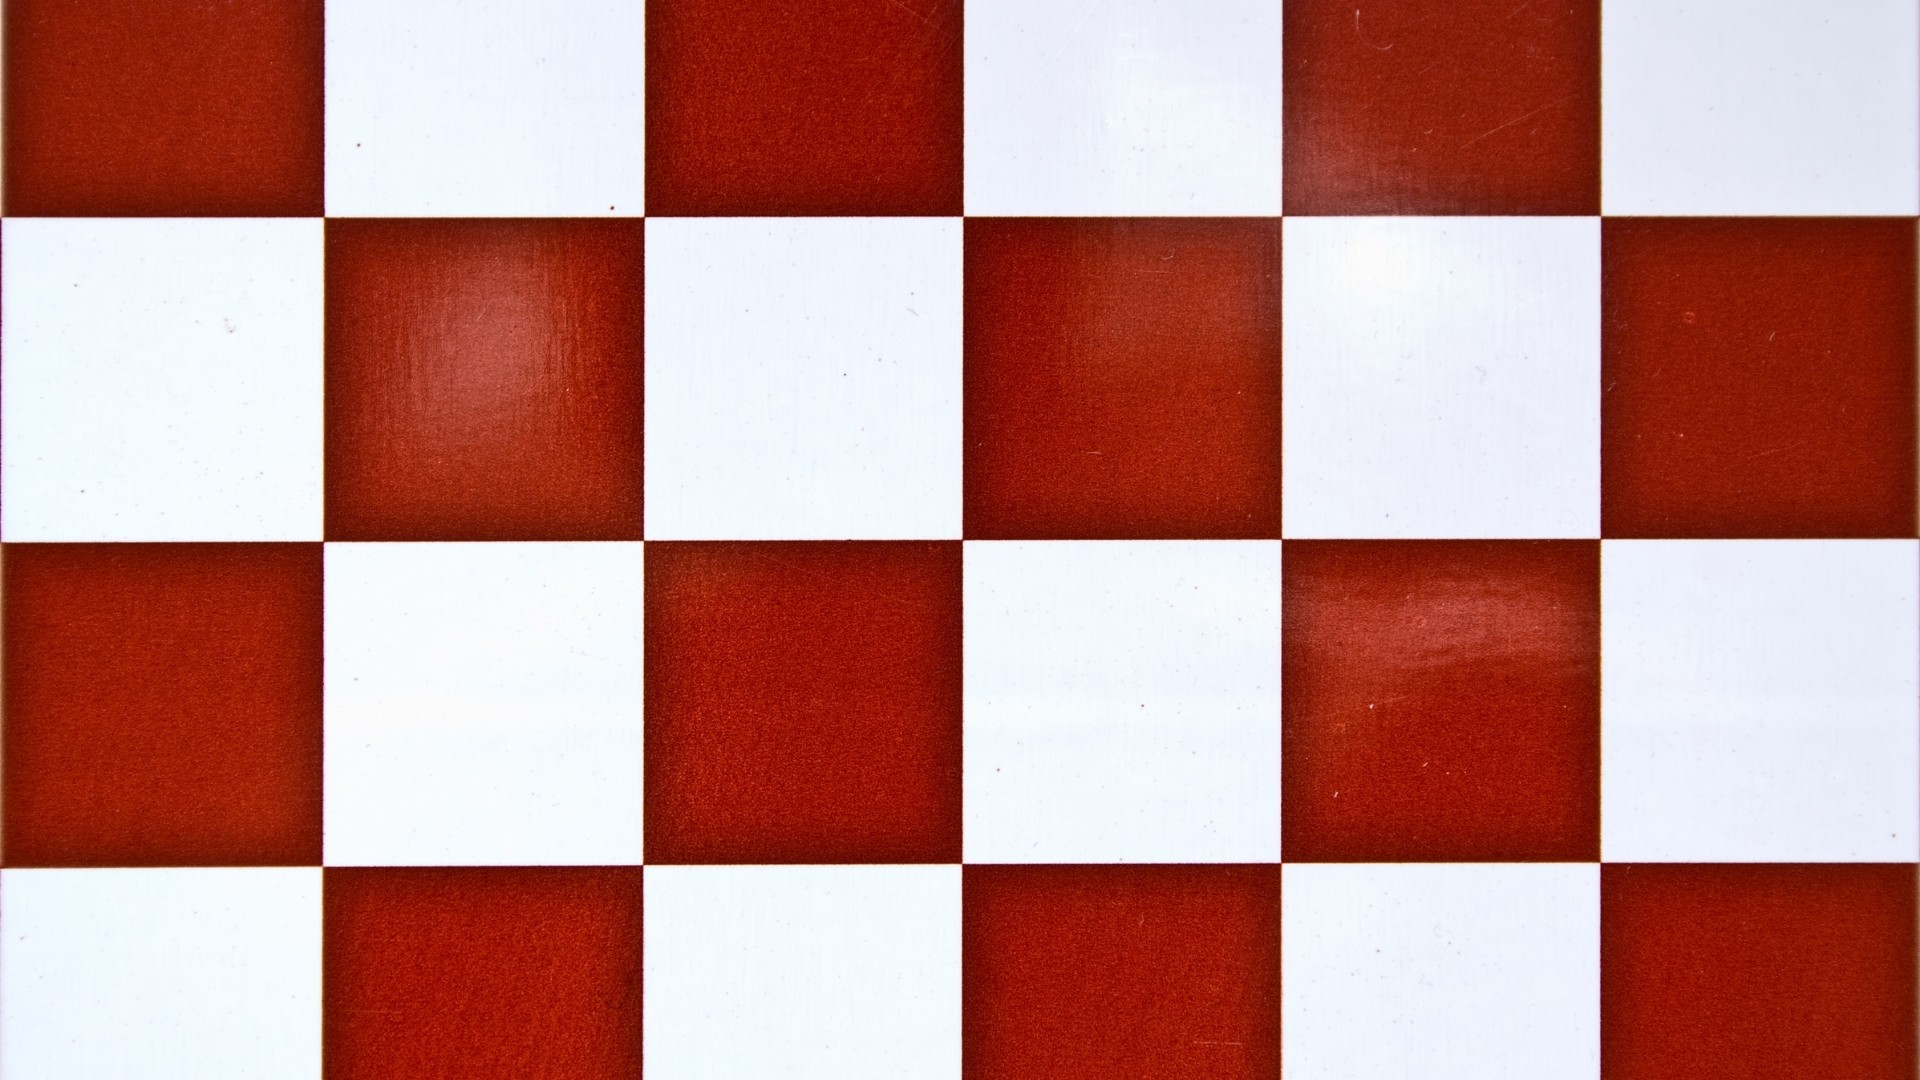 Red and white backgrounds